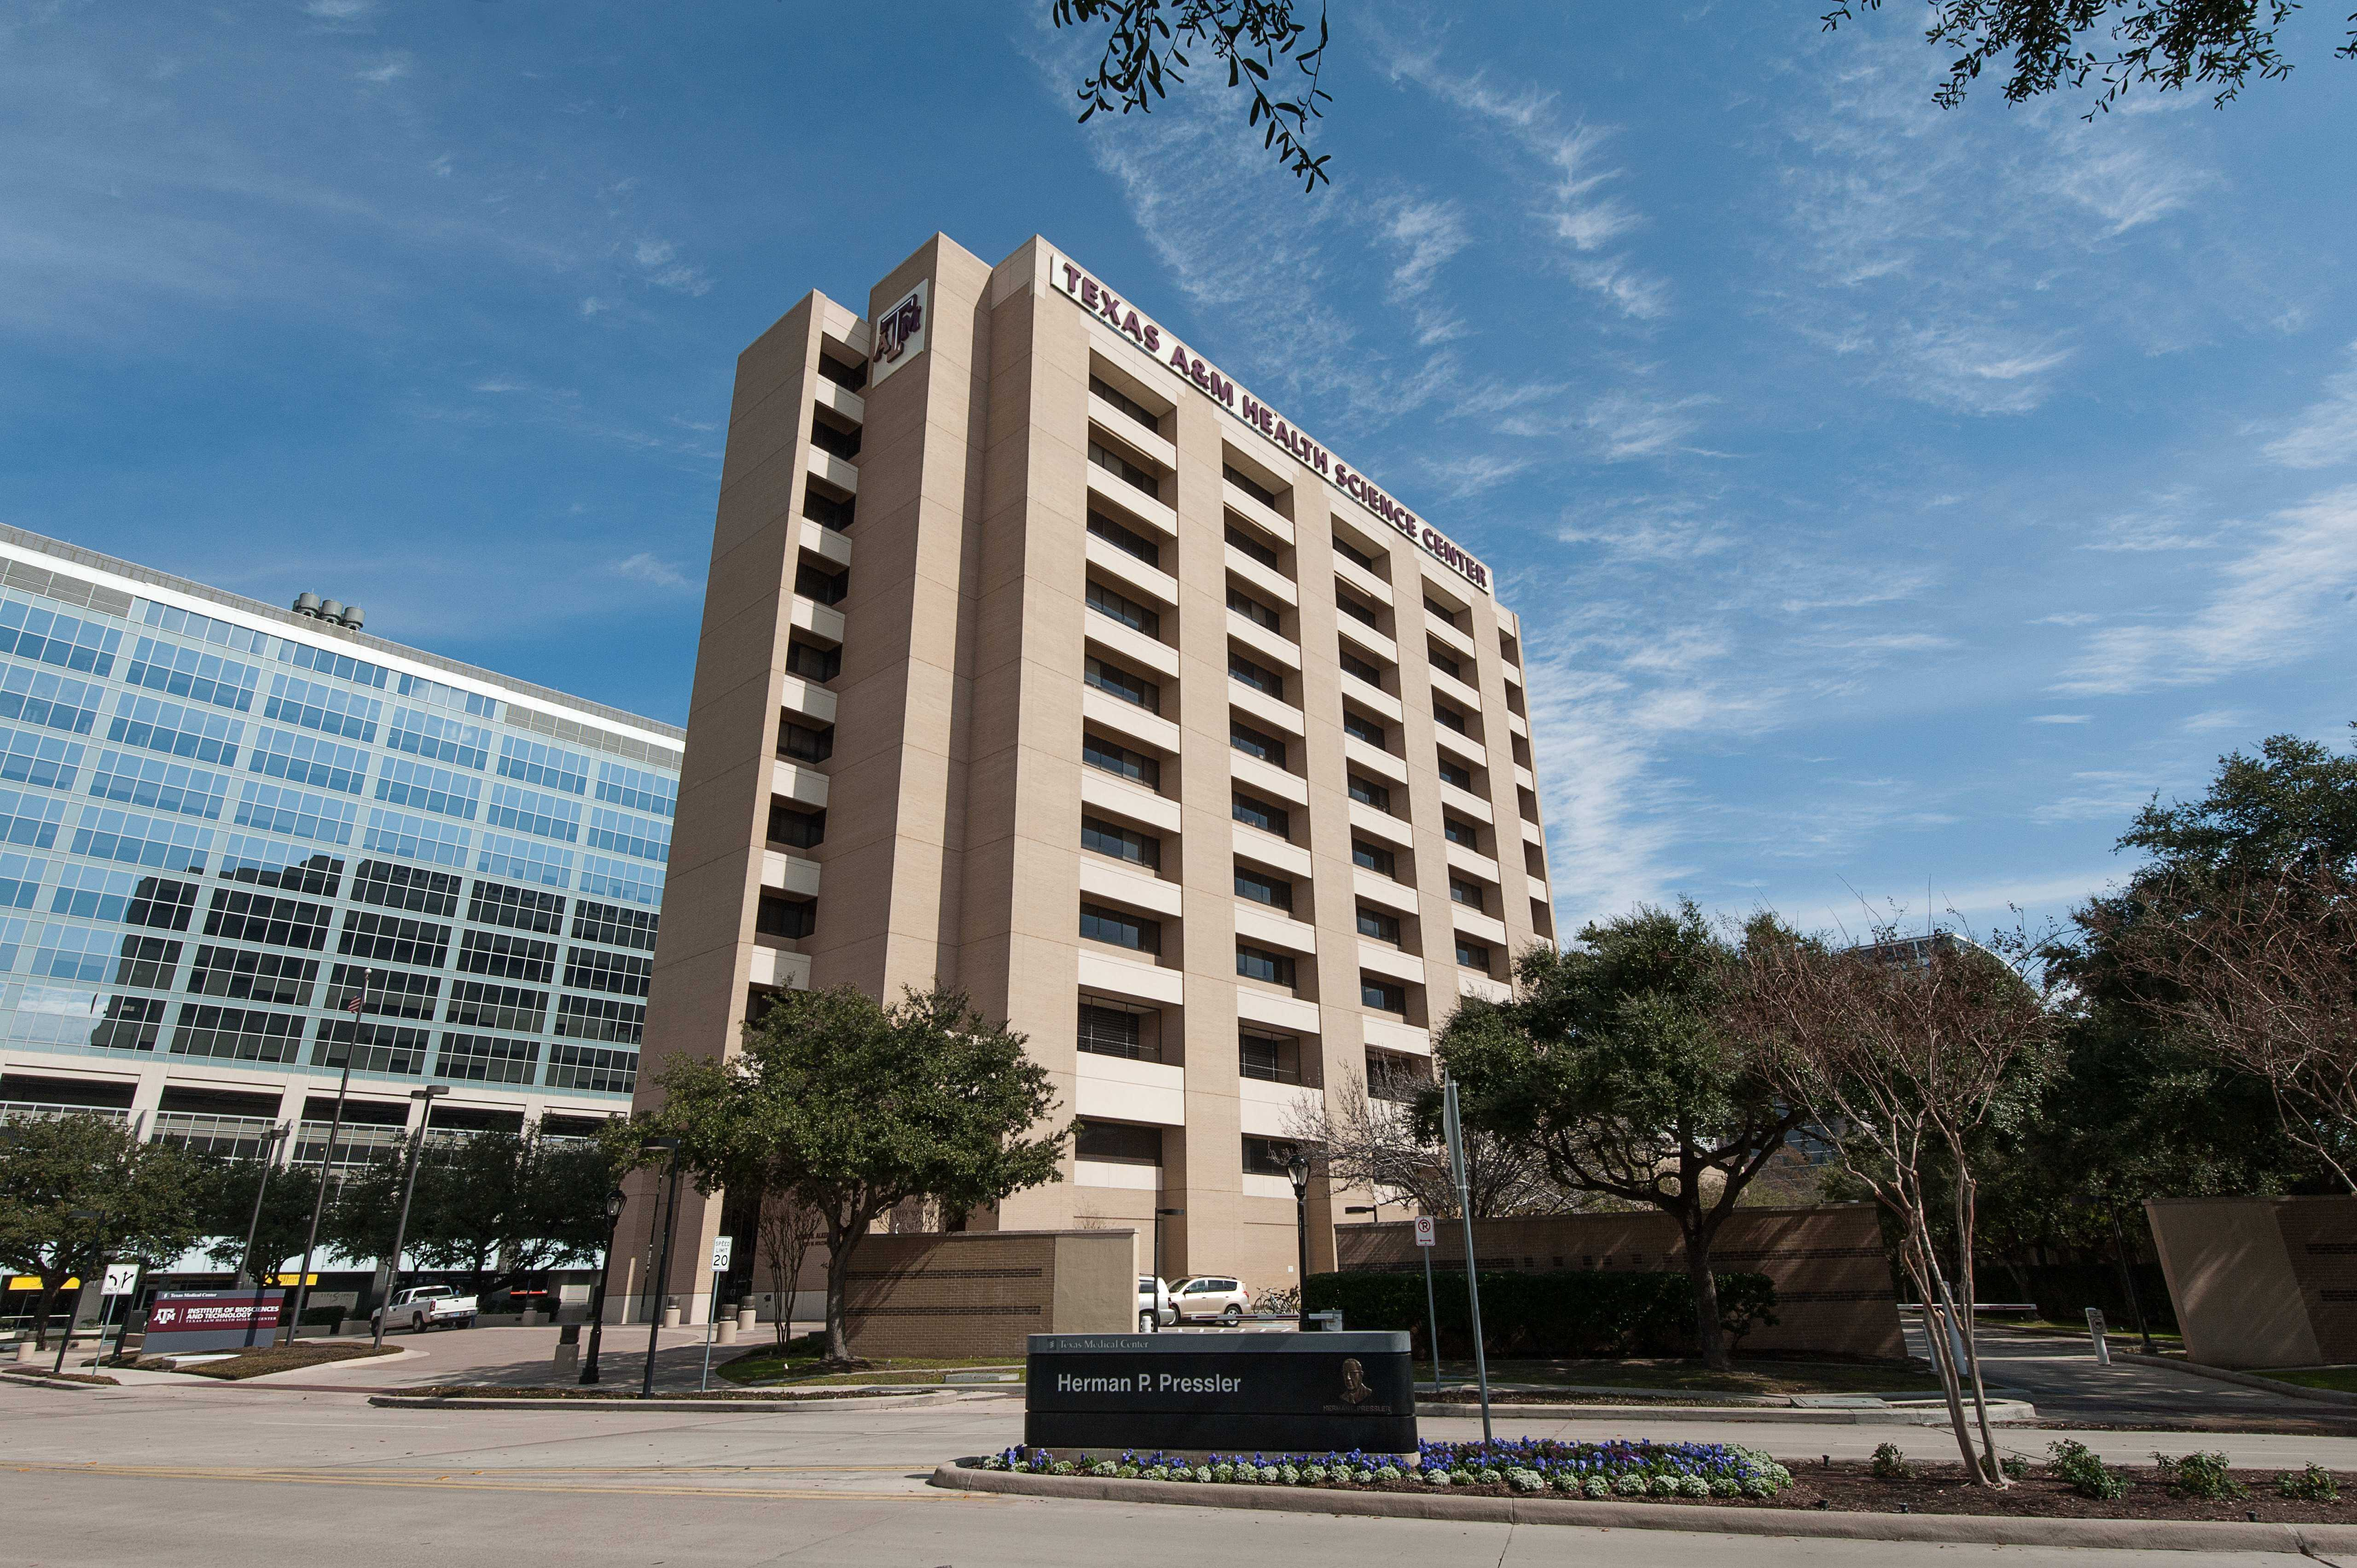 Texas A&M Health Science Center (1 of 2) low qual